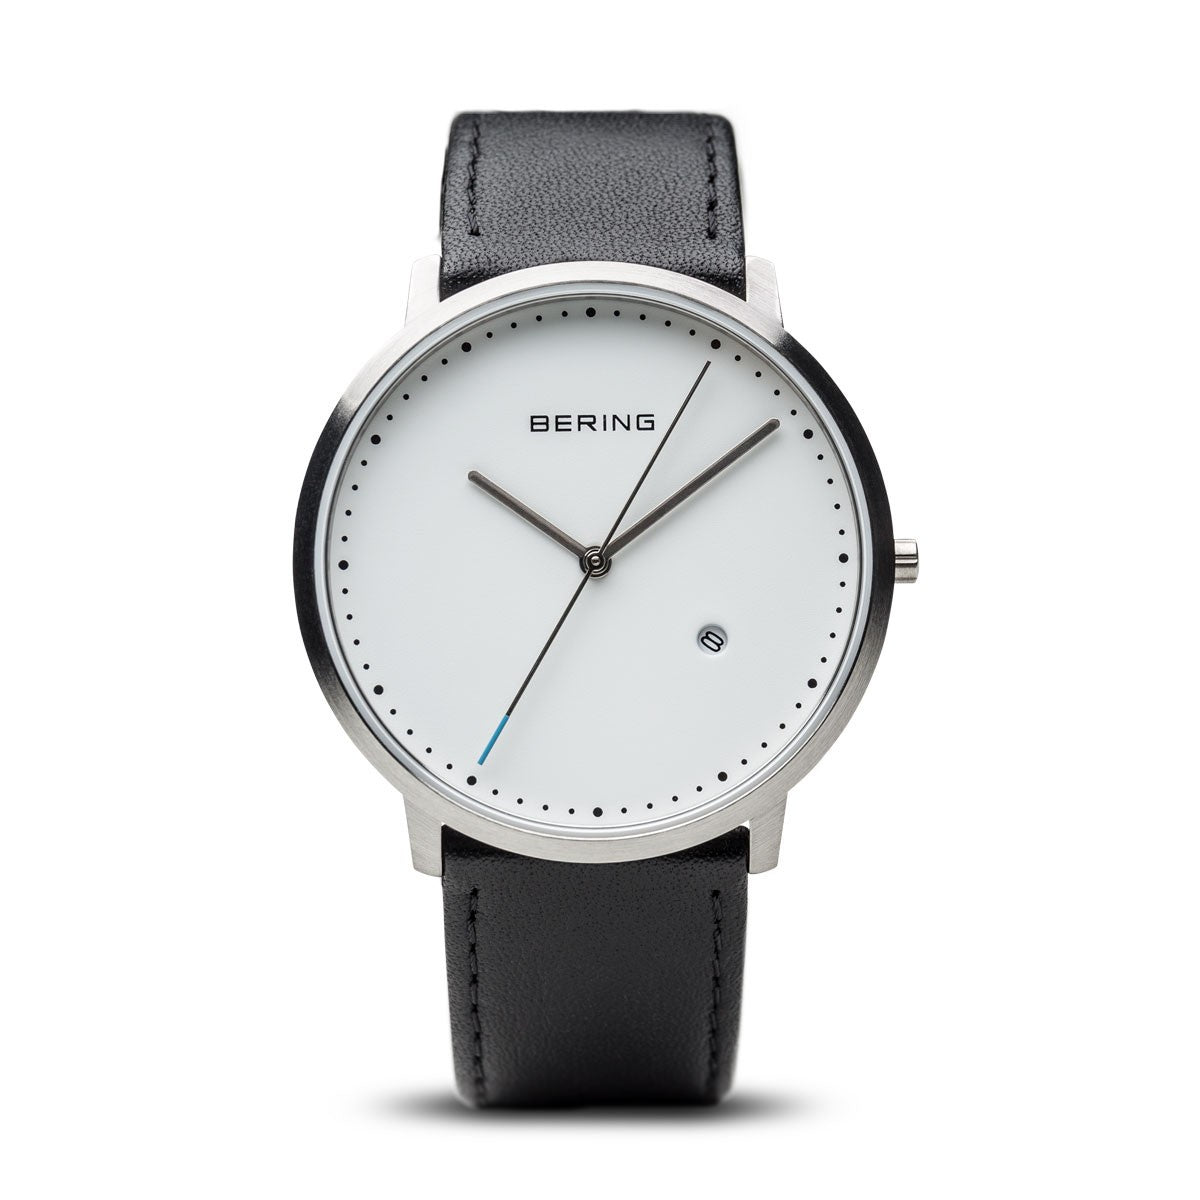 Bering Unisex Classic Brushed Silver Watch 11139-404 - Robert Openshaw Fine Jewellery